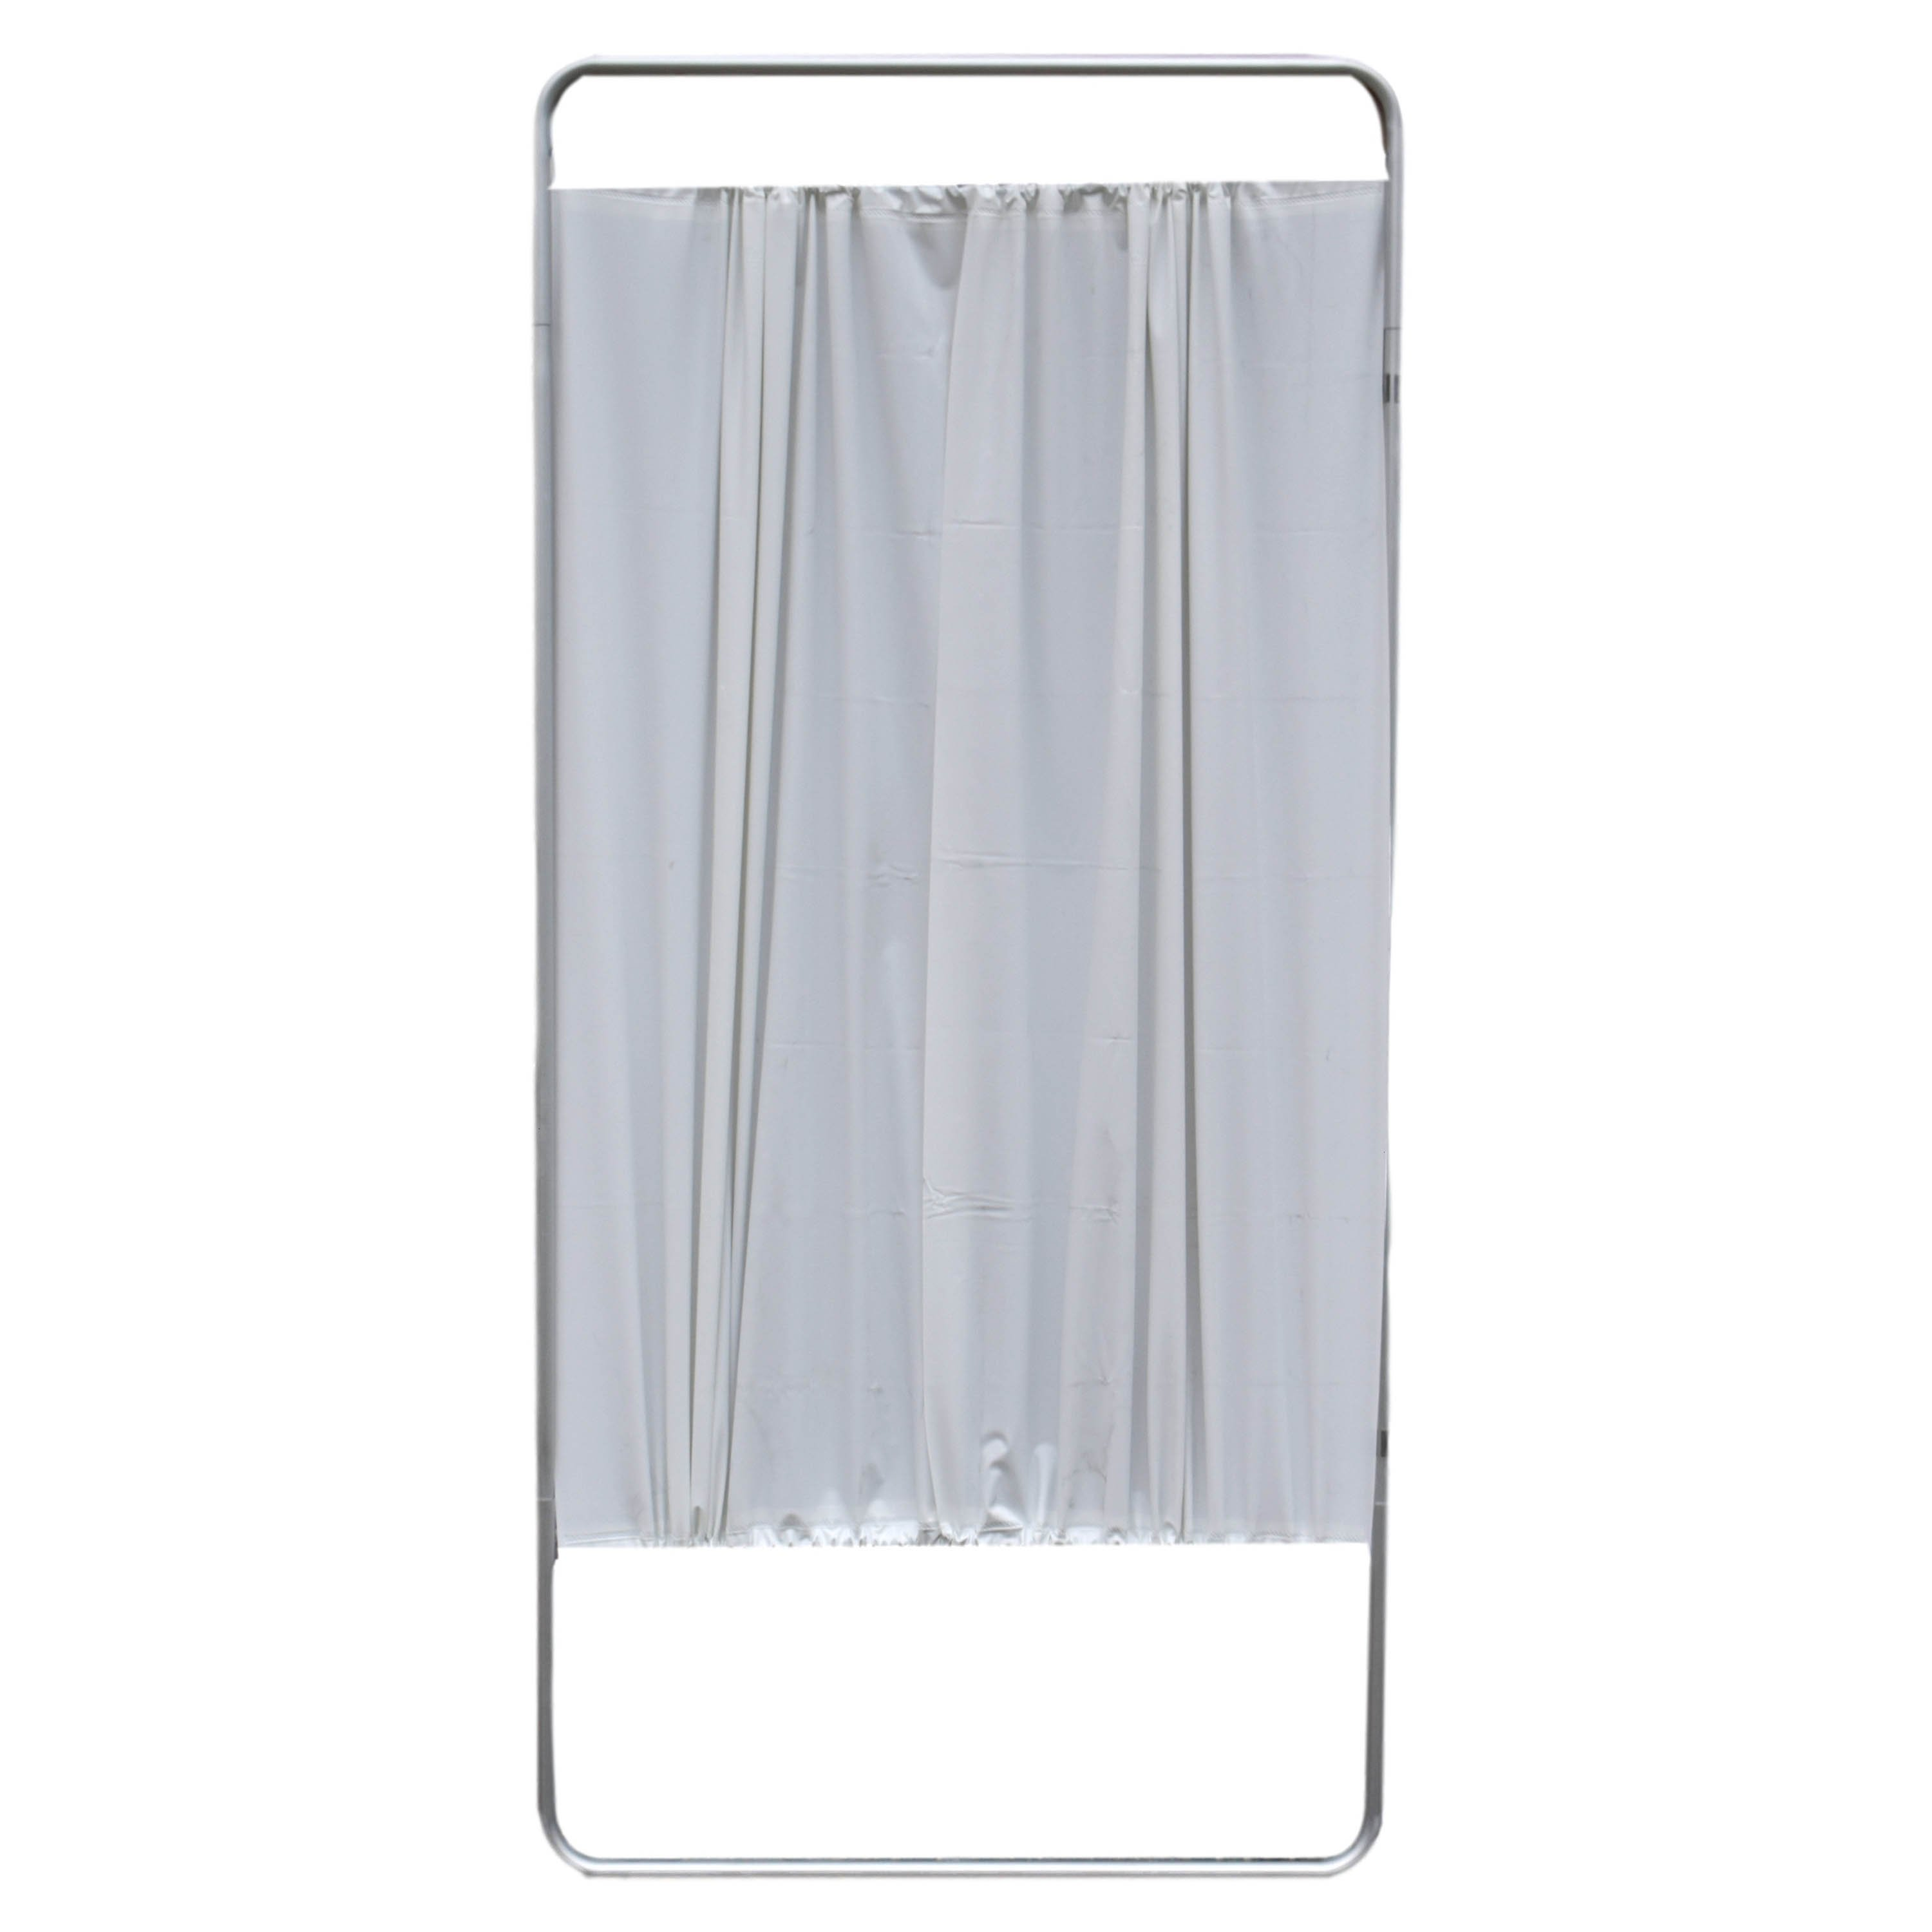 King Economy Privacy Screen with U-Hinge and White Vinyl Panel - 1 Section (Will Not Stand on Its Own)